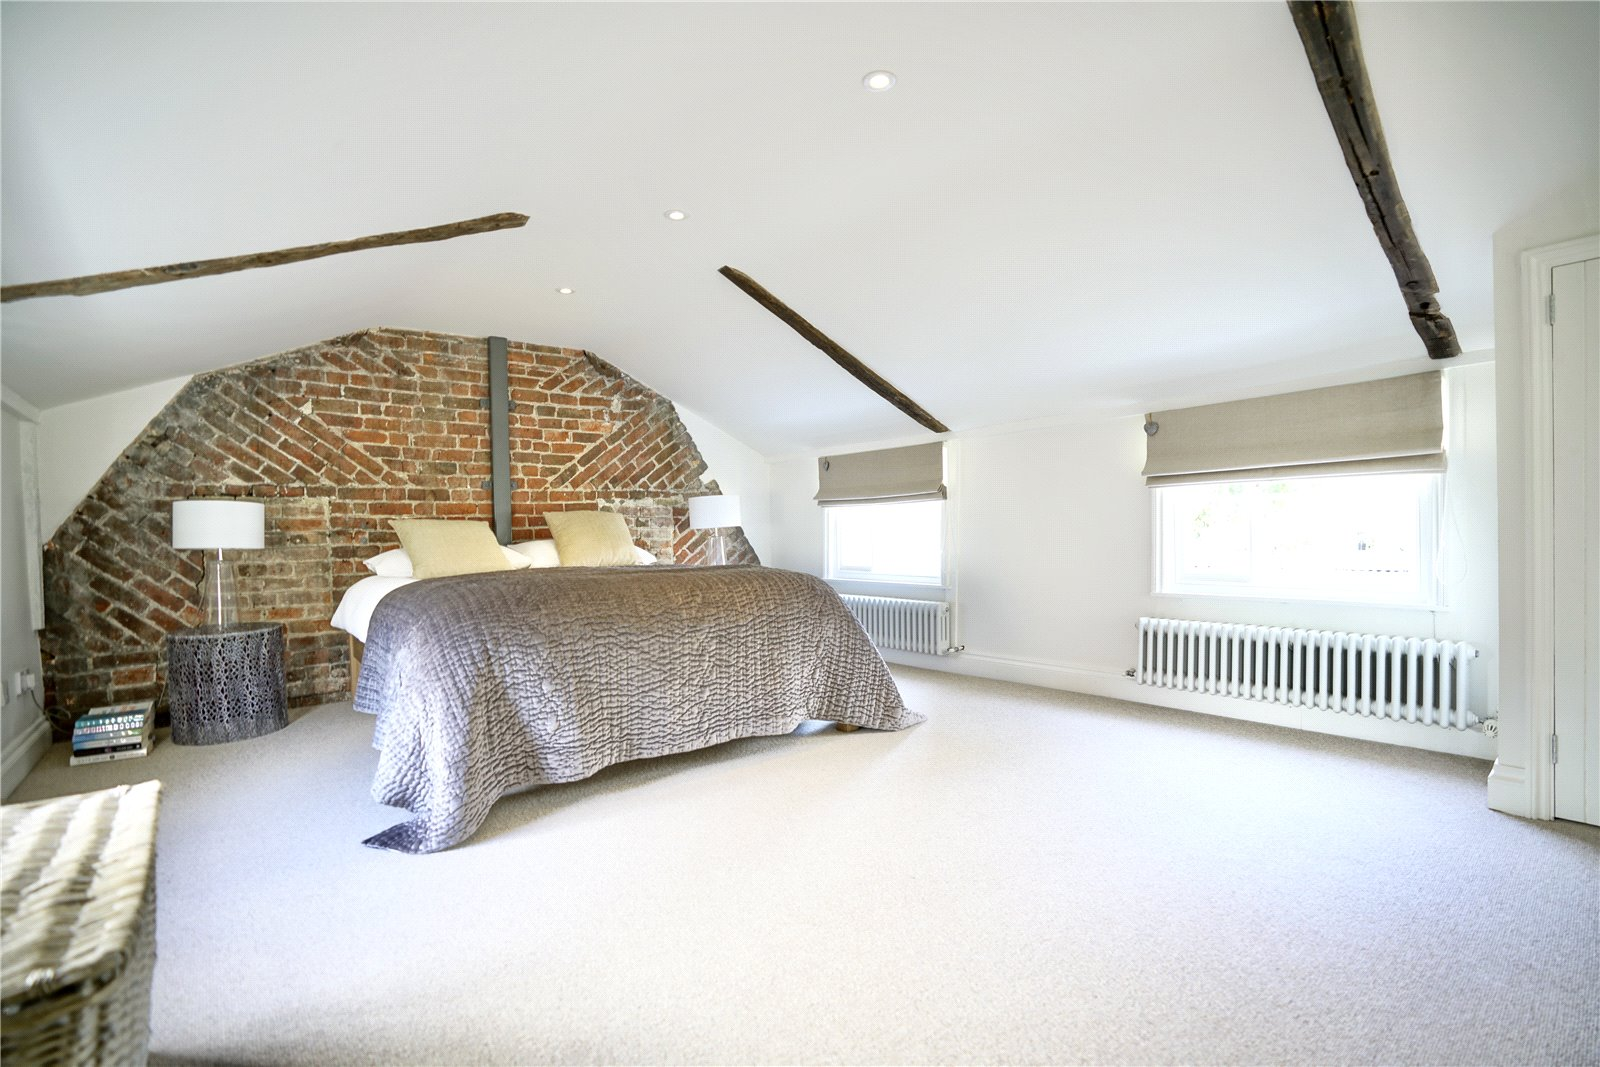 4 bed house for sale in Buckden 8